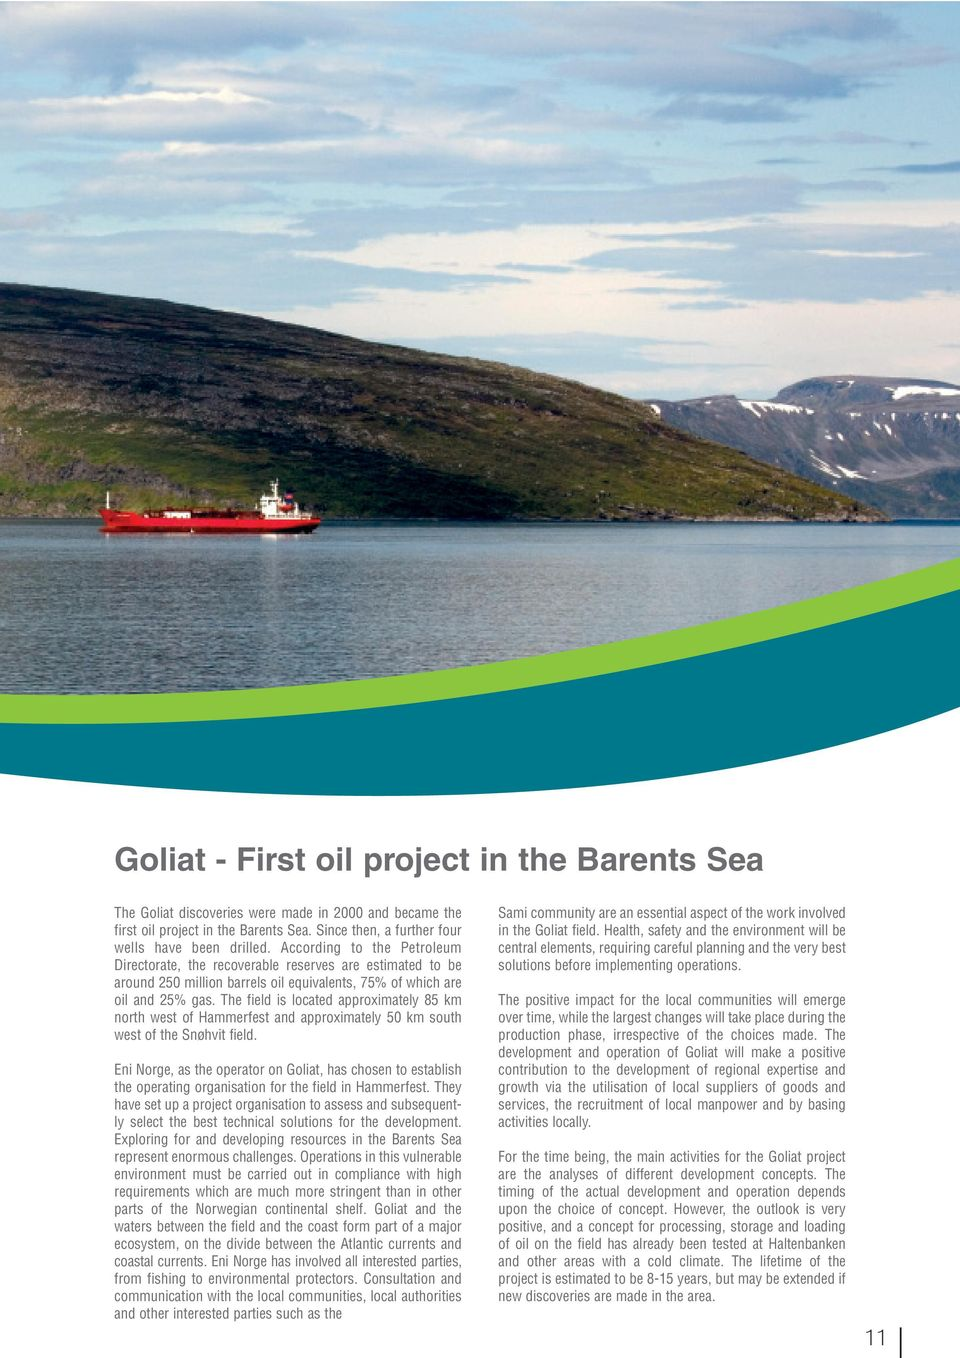 The field is located approximately 85 km north west of Hammerfest and approximately 50 km south west of the Snøhvit field.